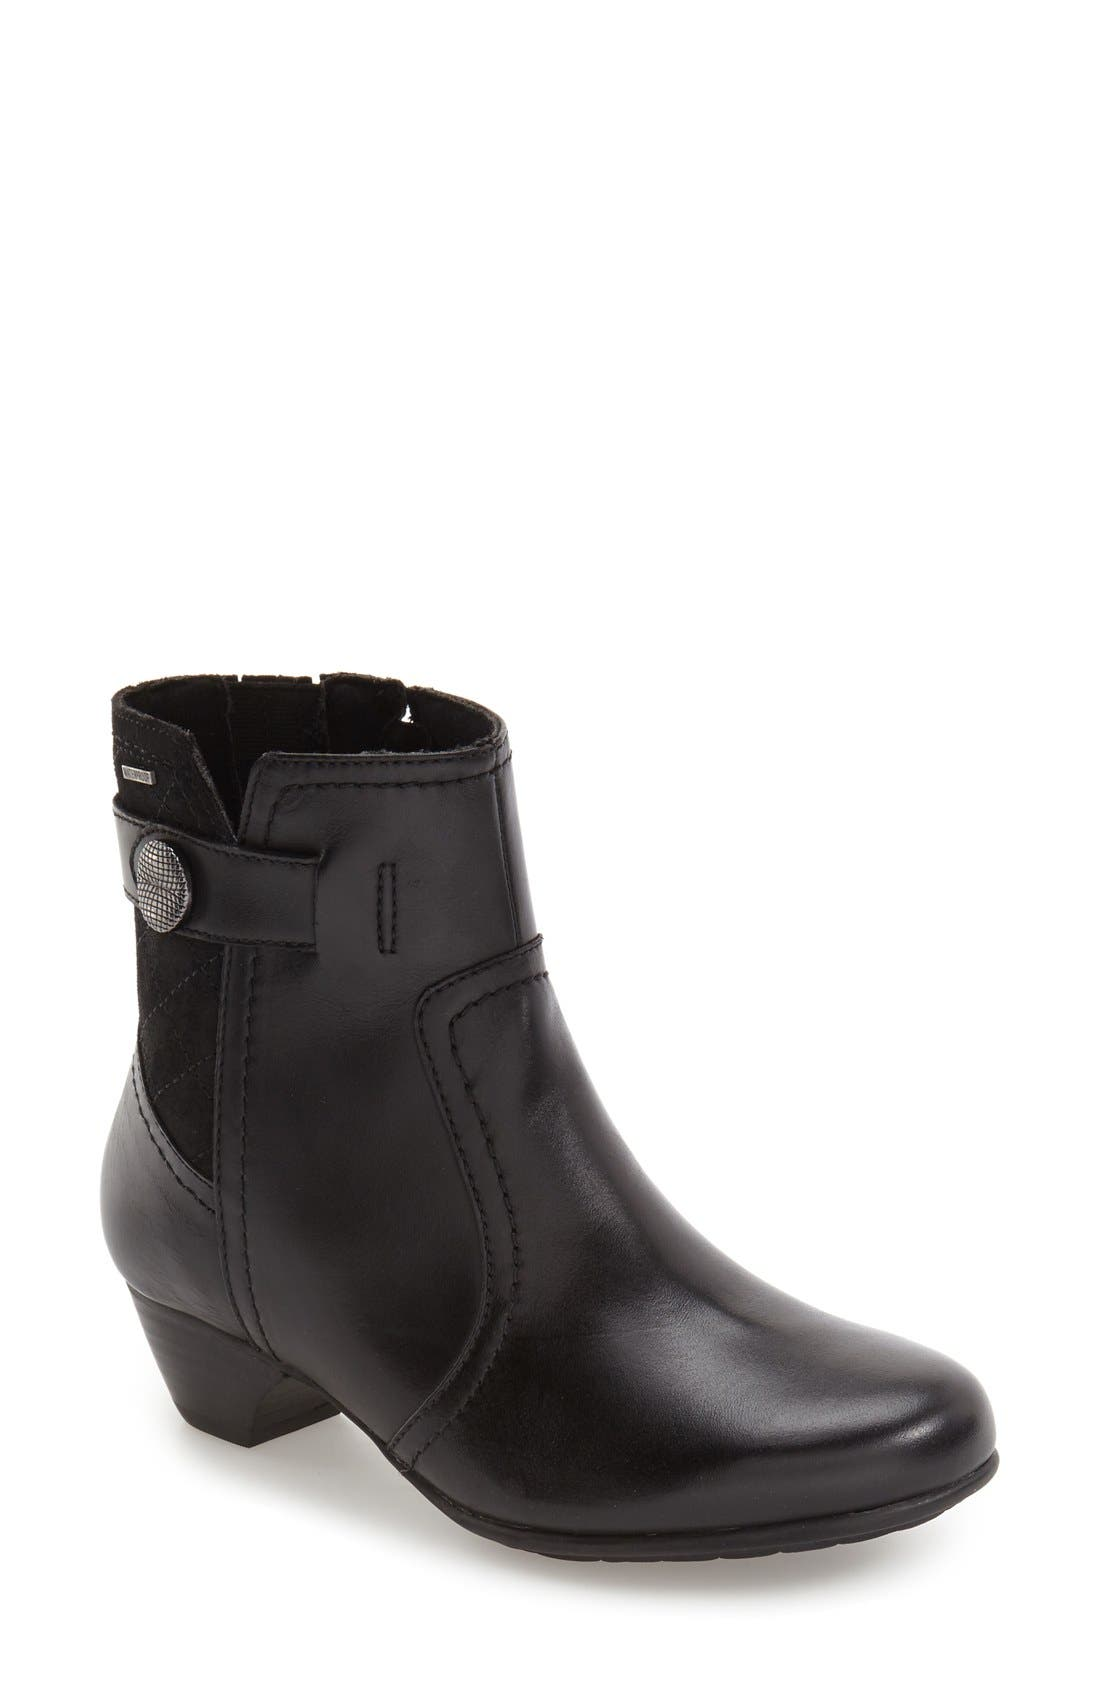 Main Image - Aravon 'Patrina' Waterproof Zip Bootie (Women)